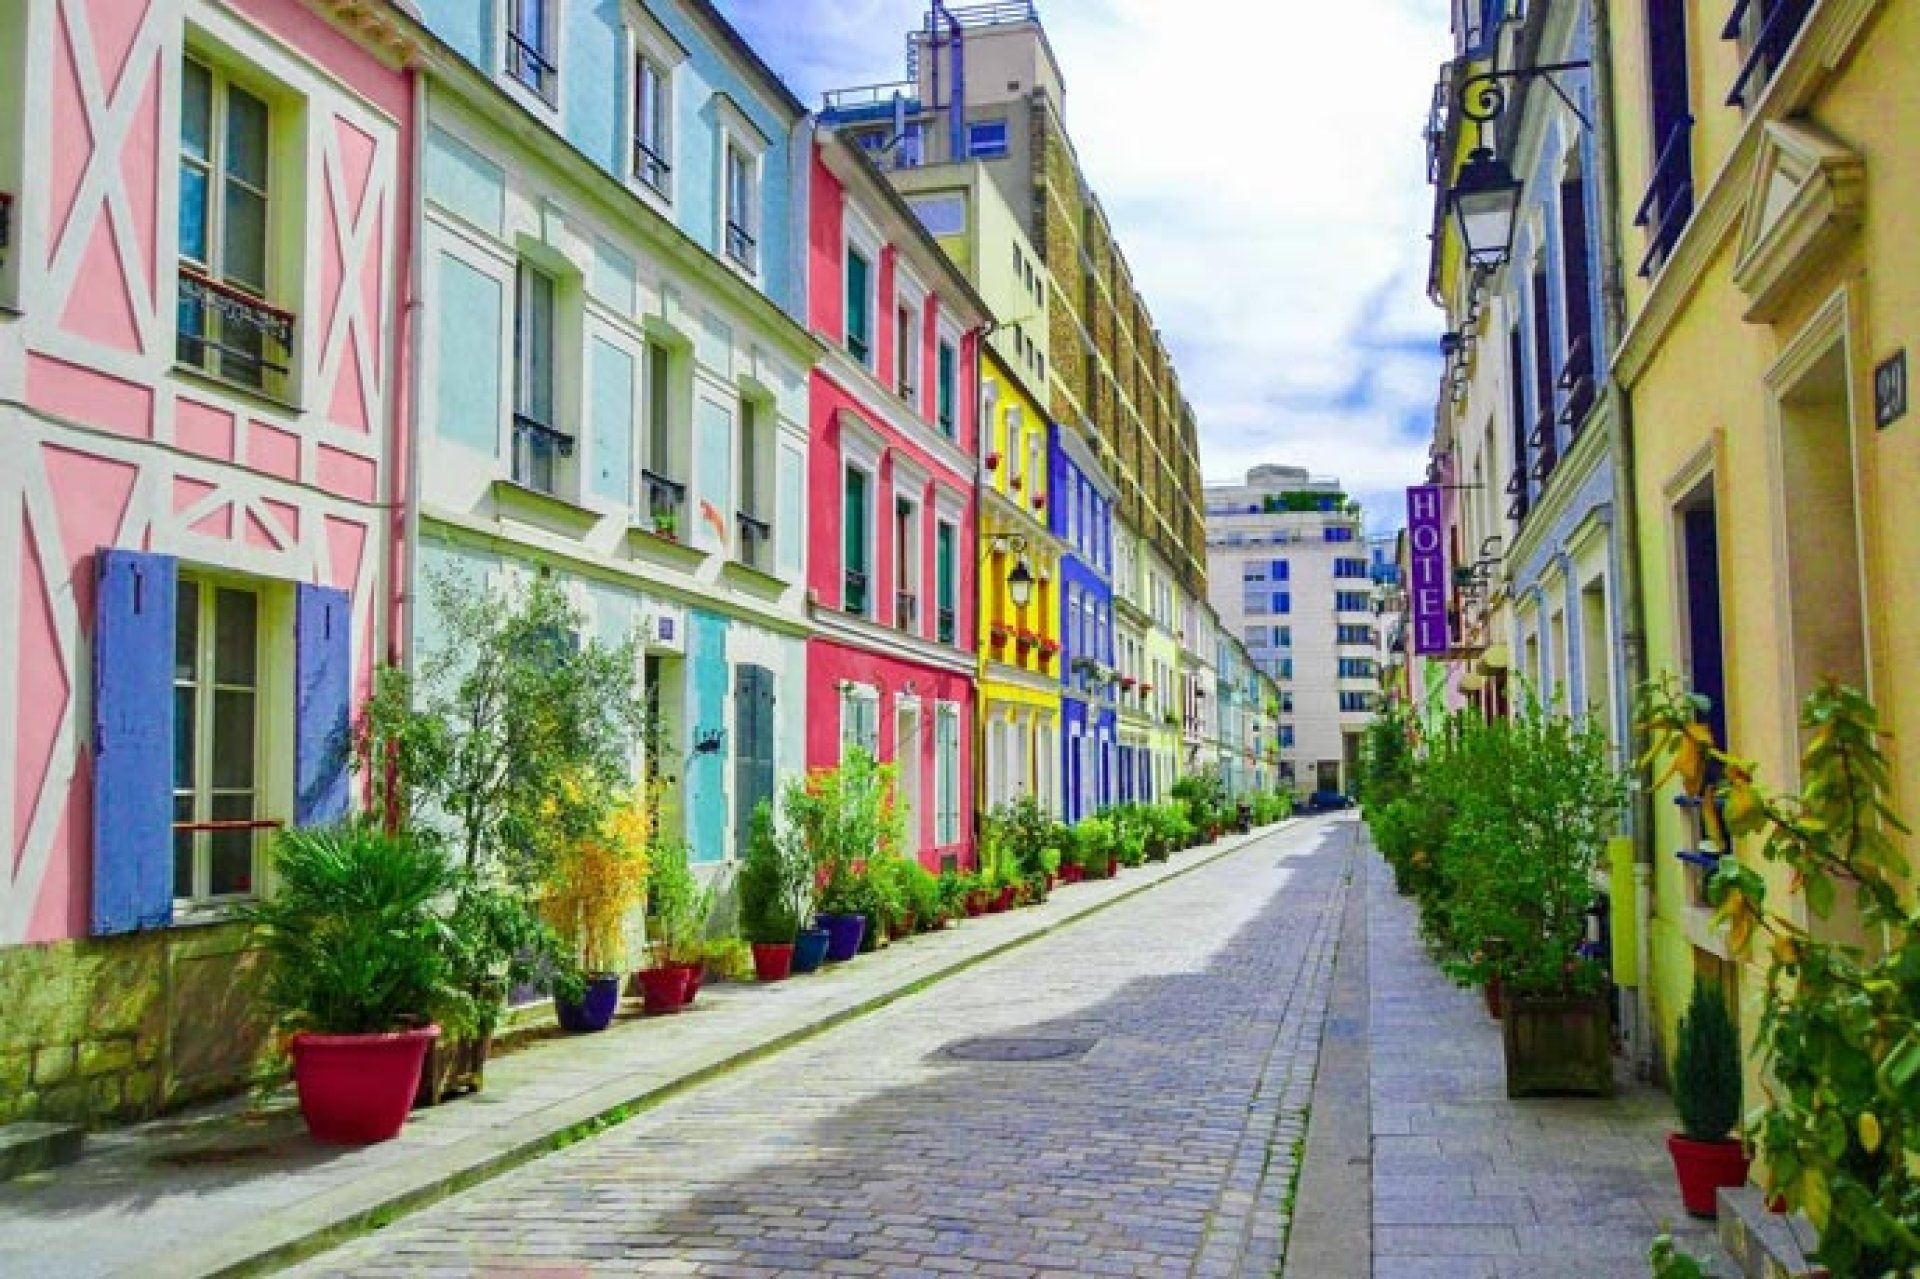 Paris secret tips - little cobbled stoned alleys and colorful houses are some of the many hidden gems of Paris. Check them out if you want to discover offbeat PAris